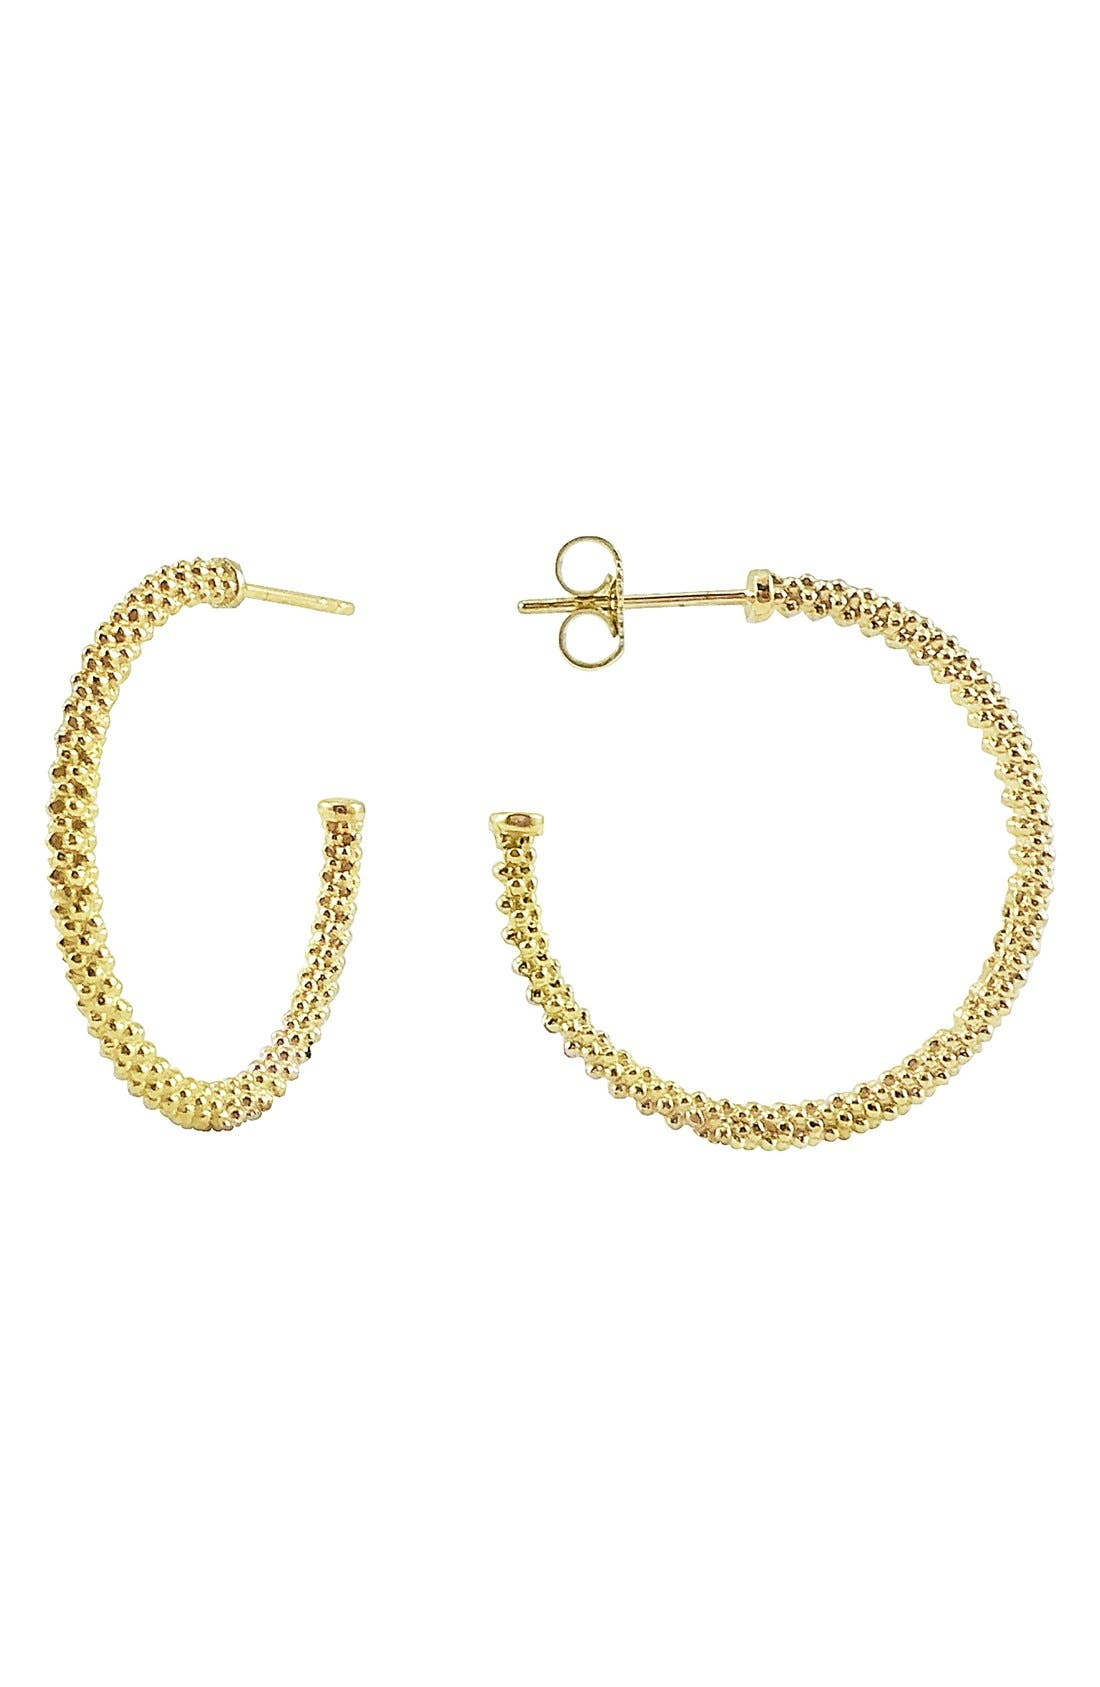 LAGOS Caviar Hoop Earrings